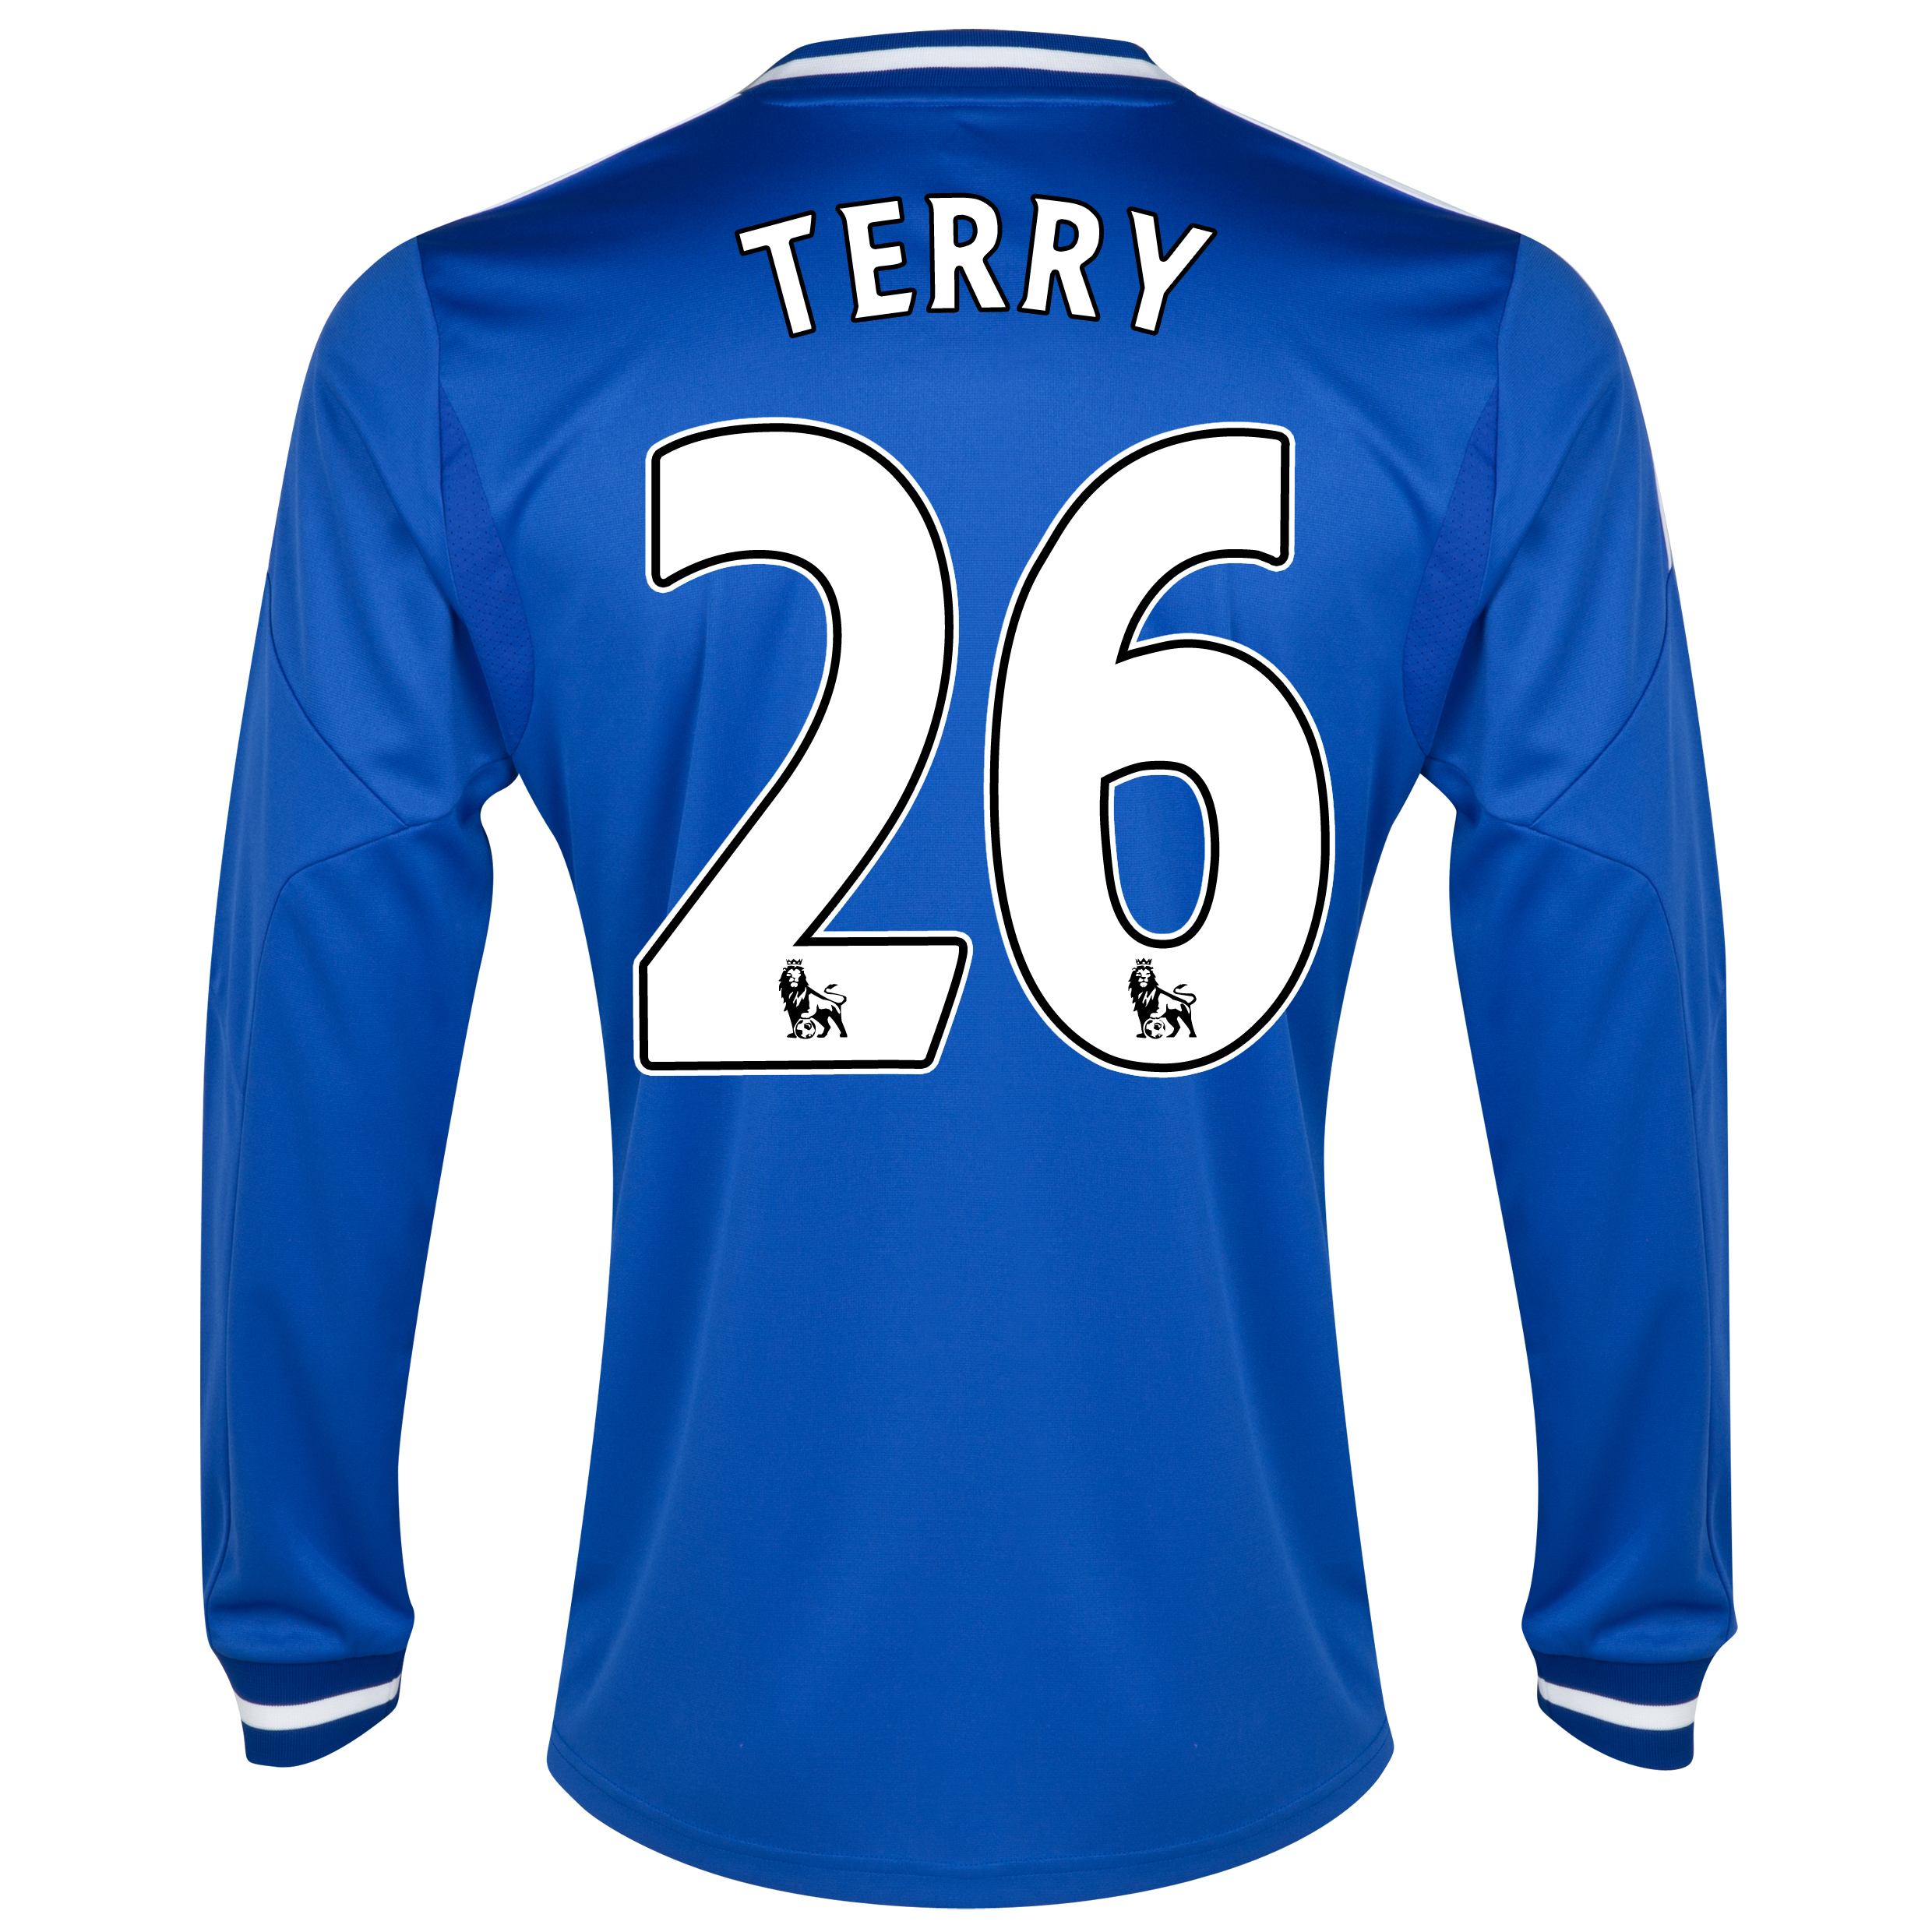 Chelsea Home Shirt 2013/14 - Long Sleeve with Terry 26 printing